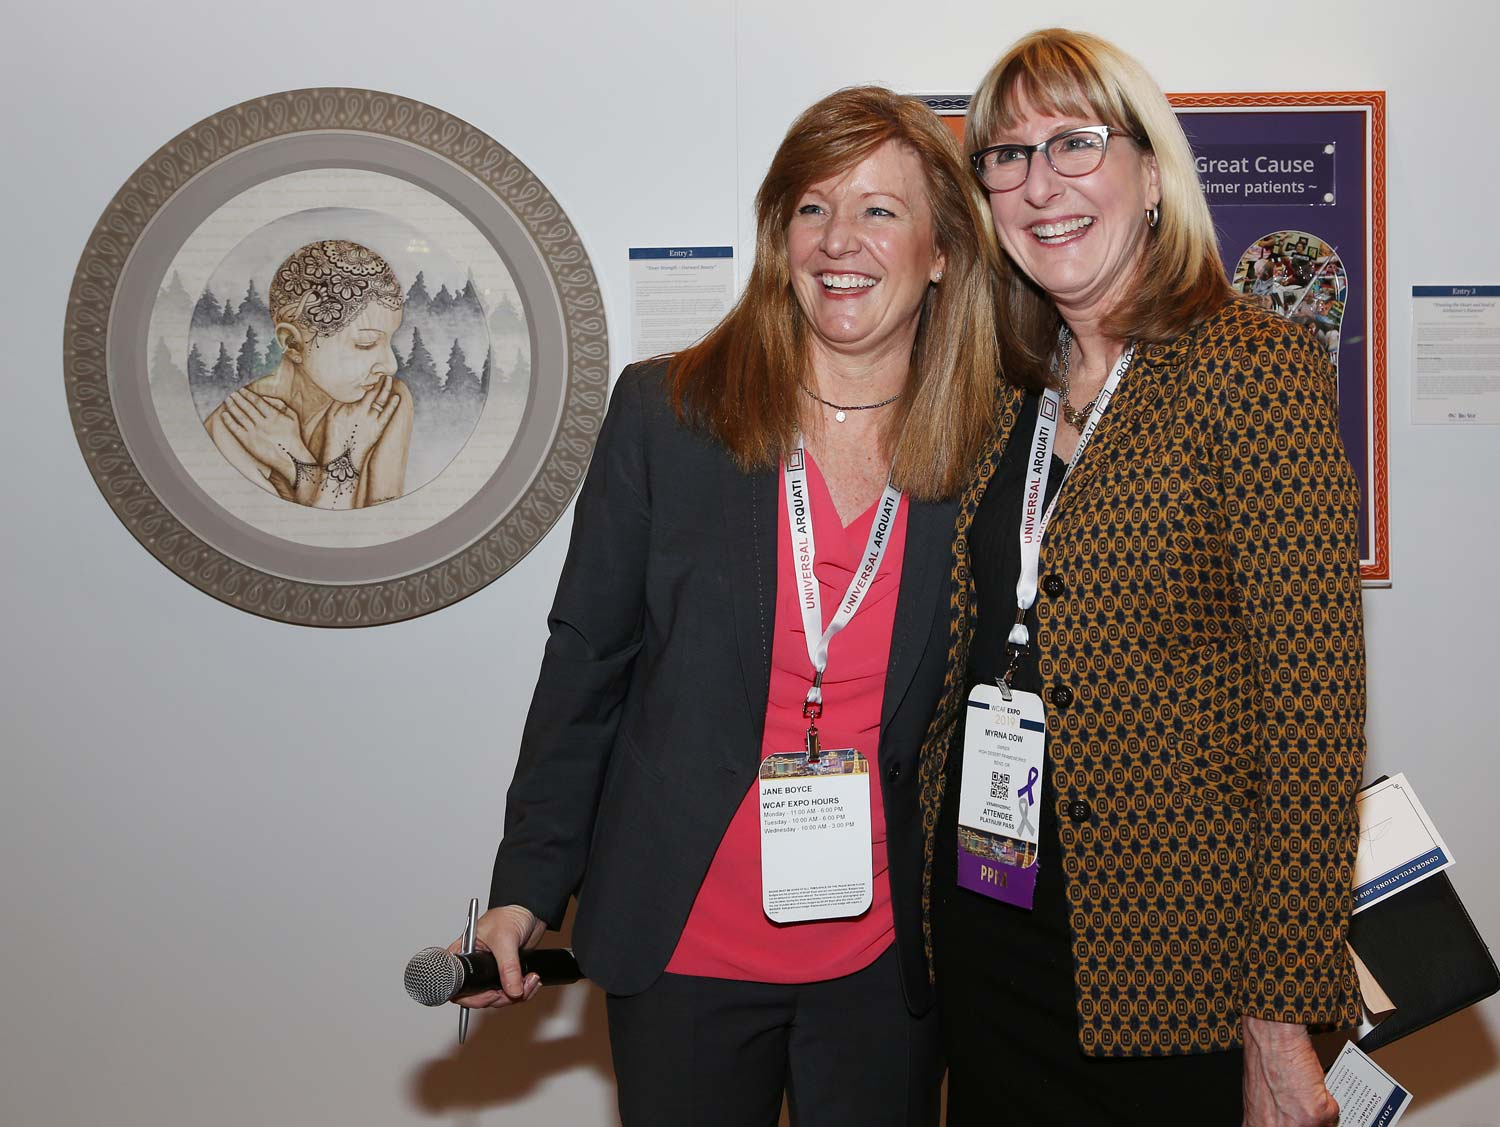 Myrna Dow (right), President and Founder of High Desert Frameworks Inc, Bend Oregon with Jane Boyce (left), President Tru Vue Inc. Photo Credit Mark Wallenfang 2019. West Coast Art and Frame Expo 2019 Las Vegas NV.